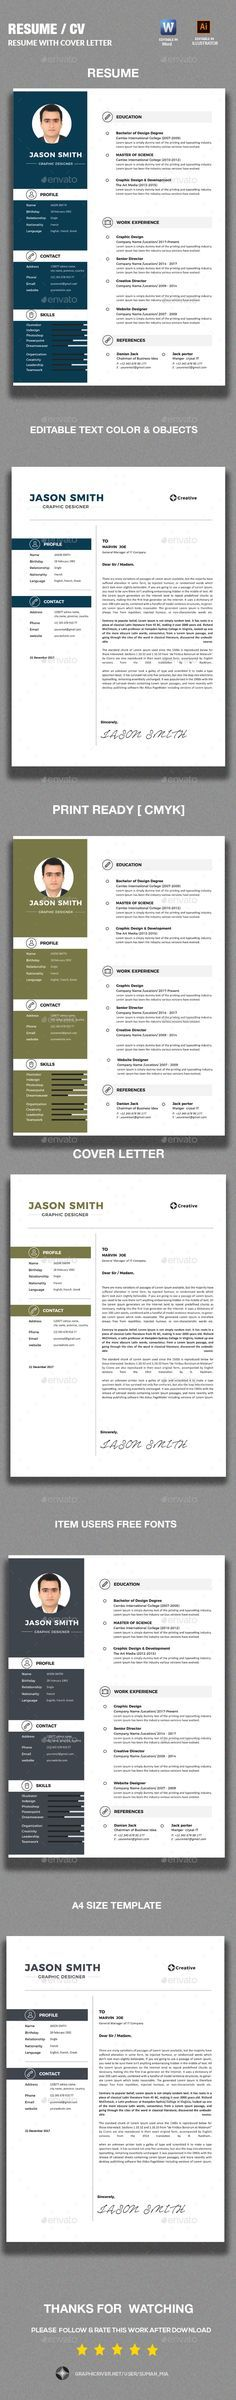 Word Resume Template - Resume Template for Word + Cover Letter - microsoft template for resume